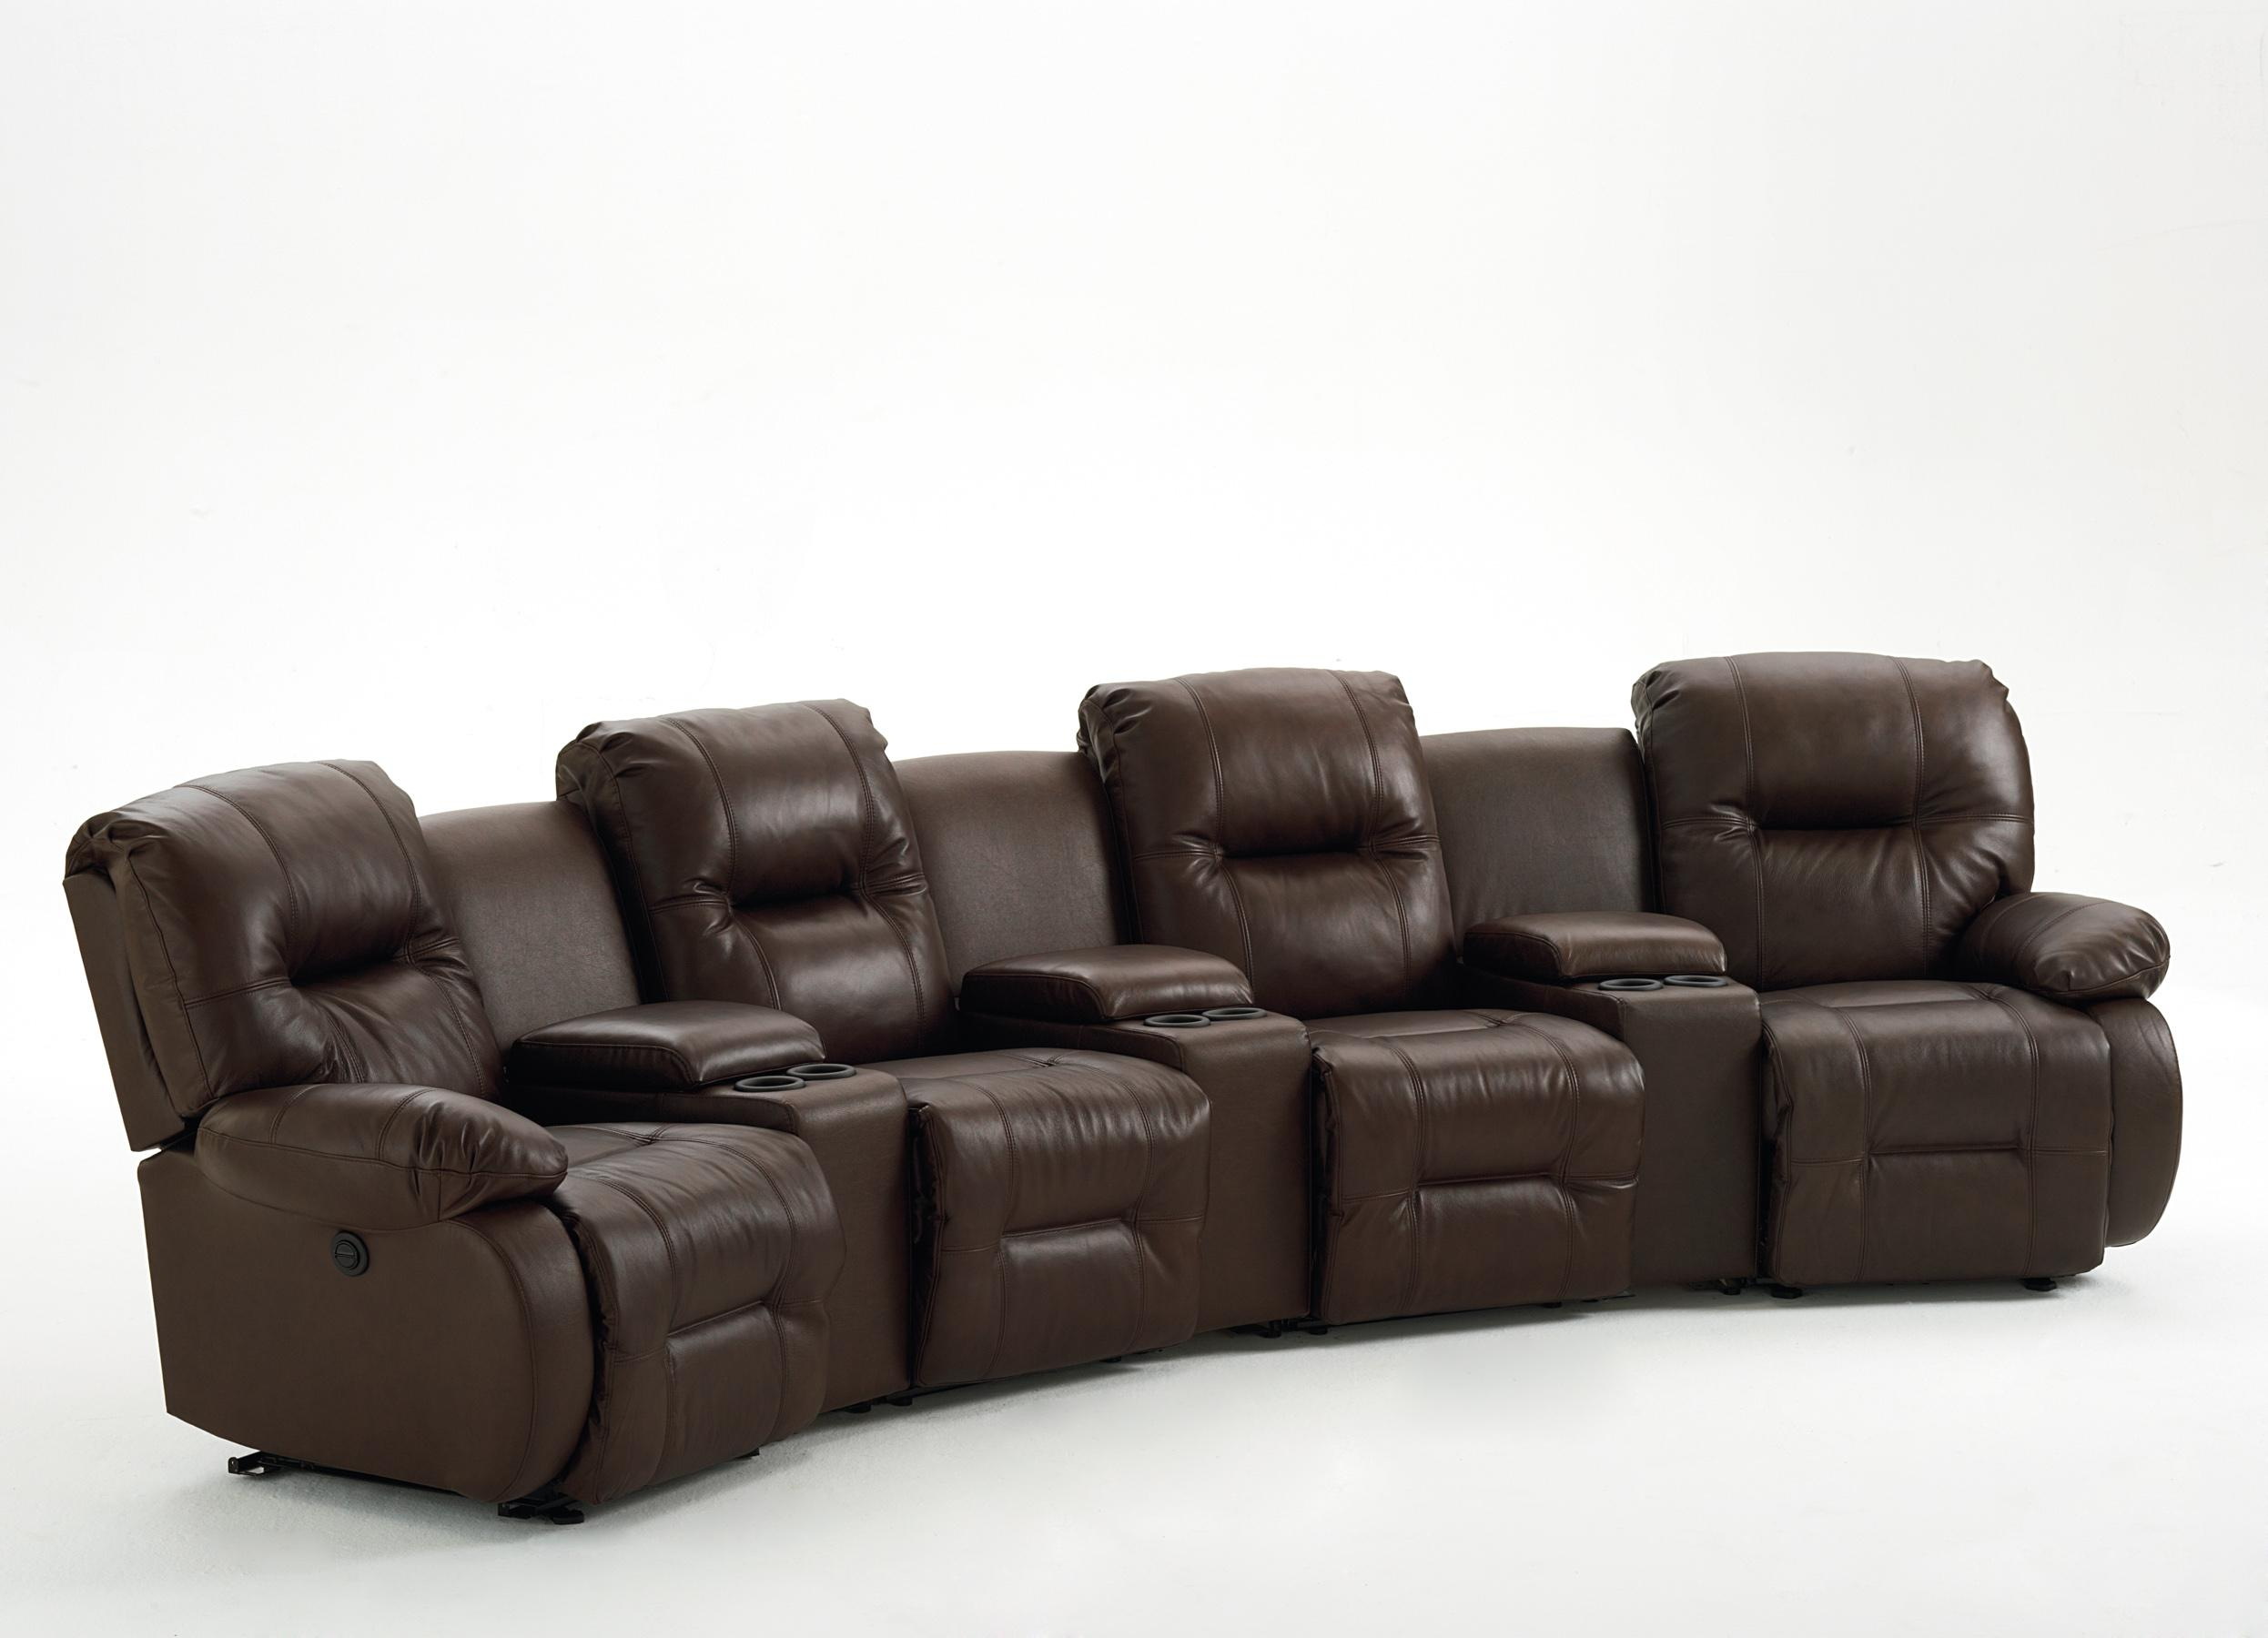 Best Home Furnishings Brinley 2 Seven Piece Reclining Home